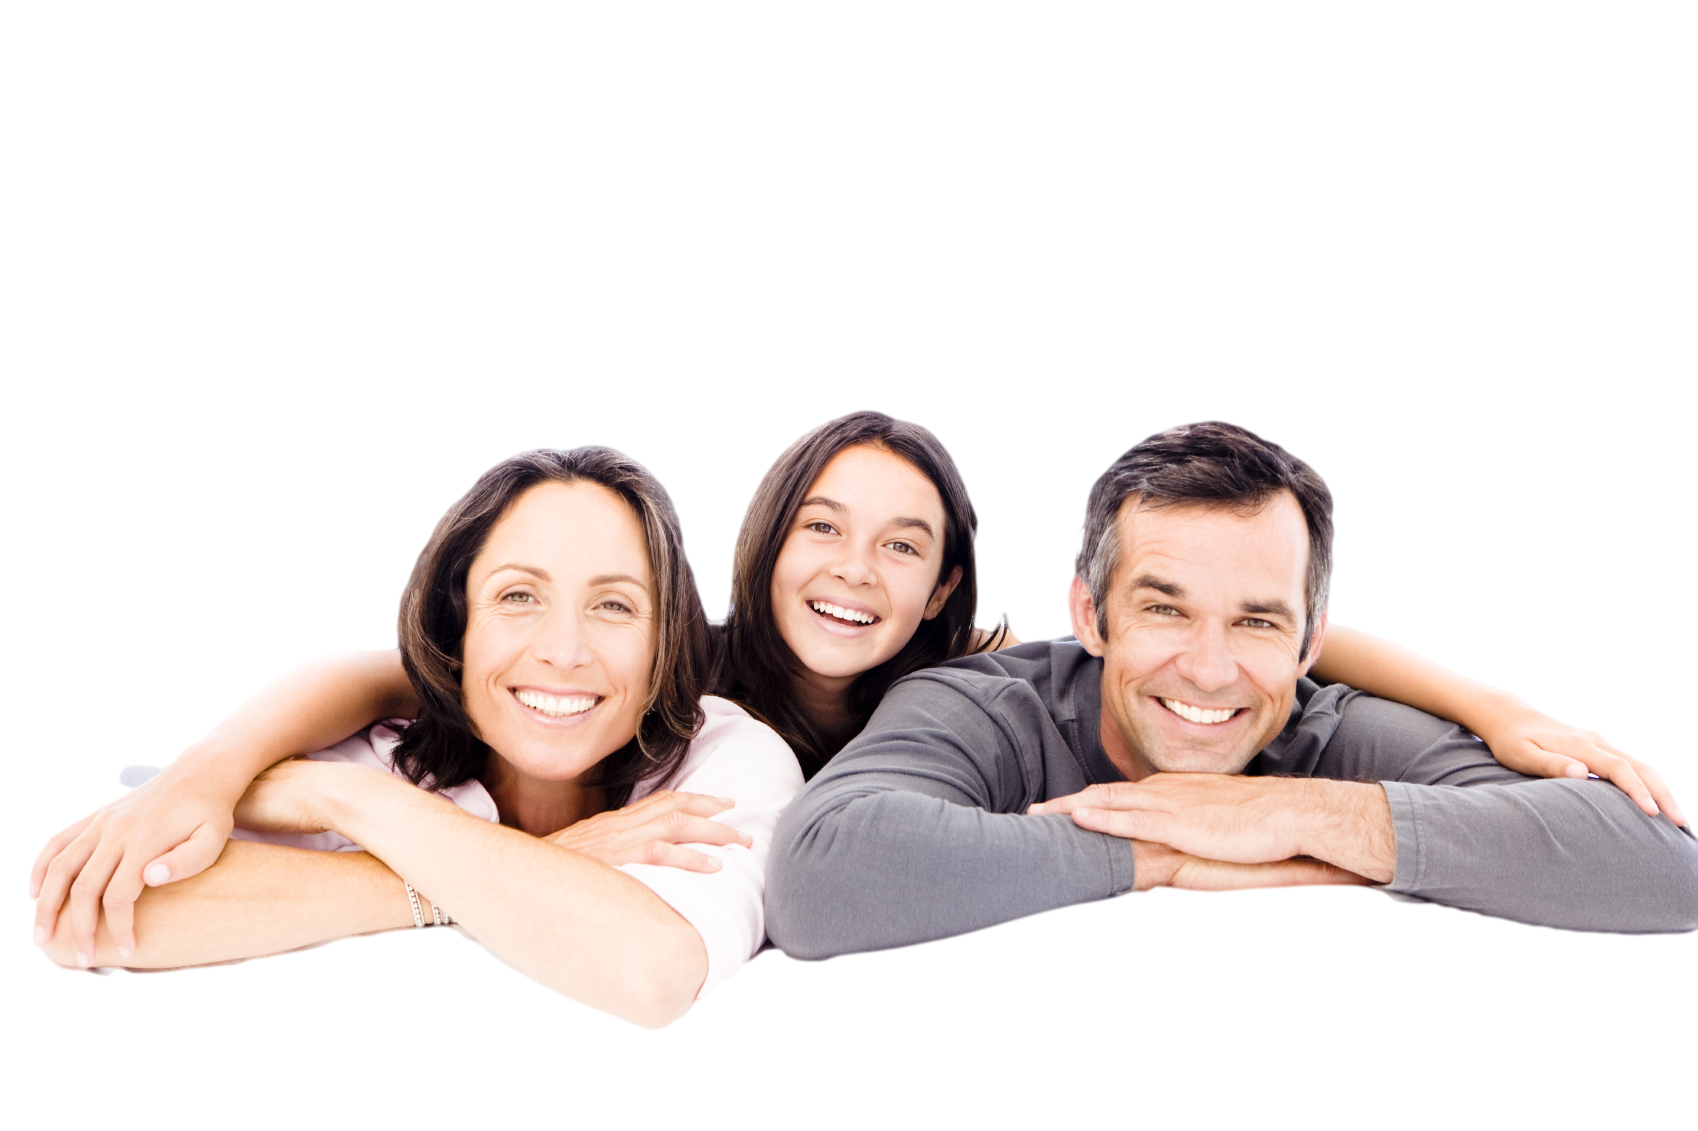 PNG Clipart Family image #40058